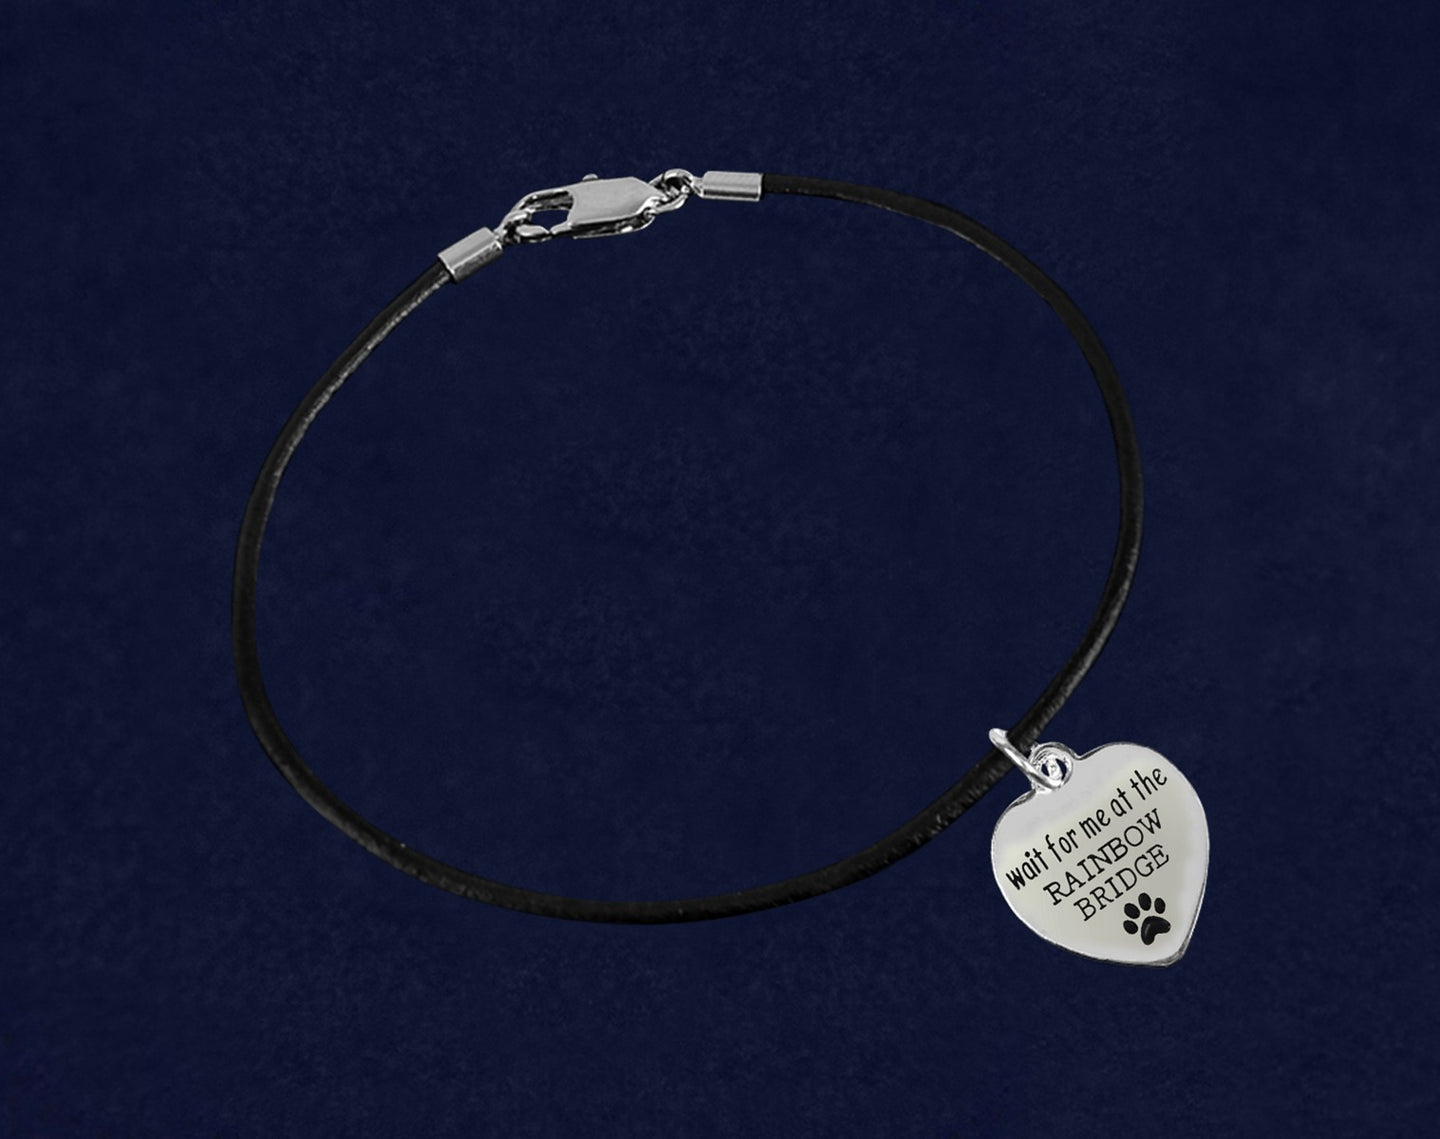 Wait For Me At The Rainbow Bridge Black Cord Bracelets - Fundraising For A Cause